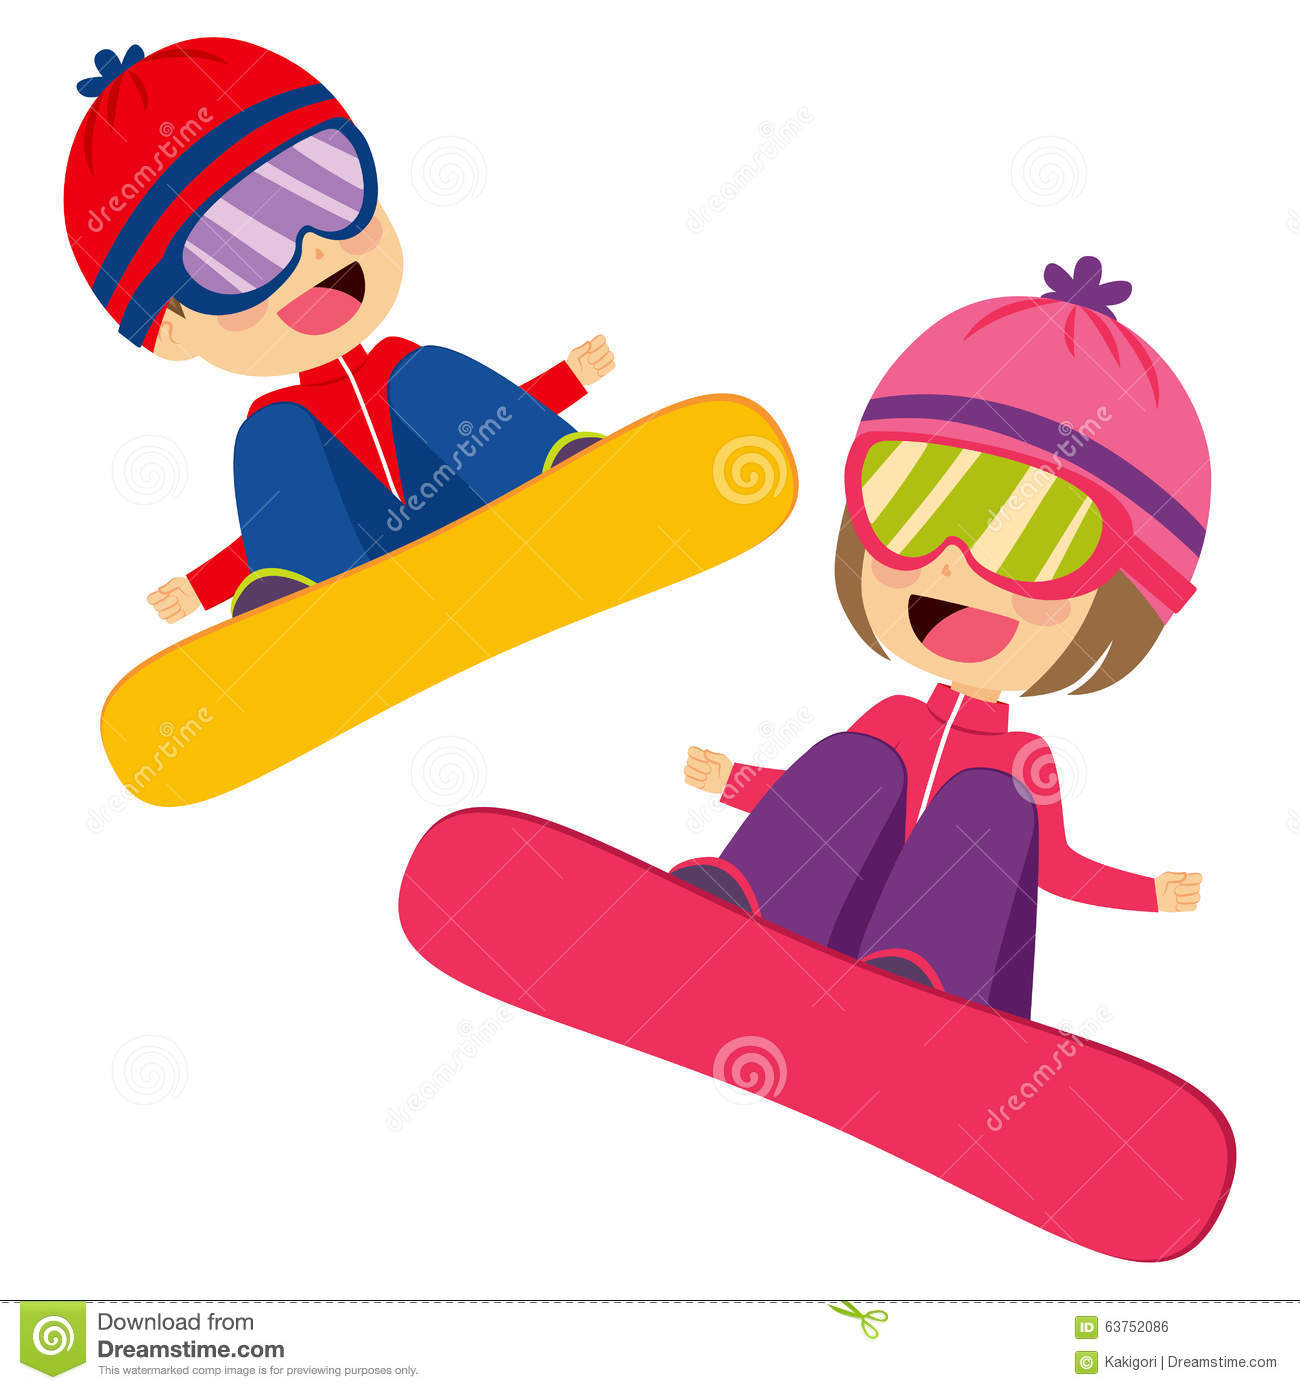 Girl snowboarding clipart picture transparent download Kids Flying Snowboarding - 1390*1300 - Free Clipart Download ... picture transparent download